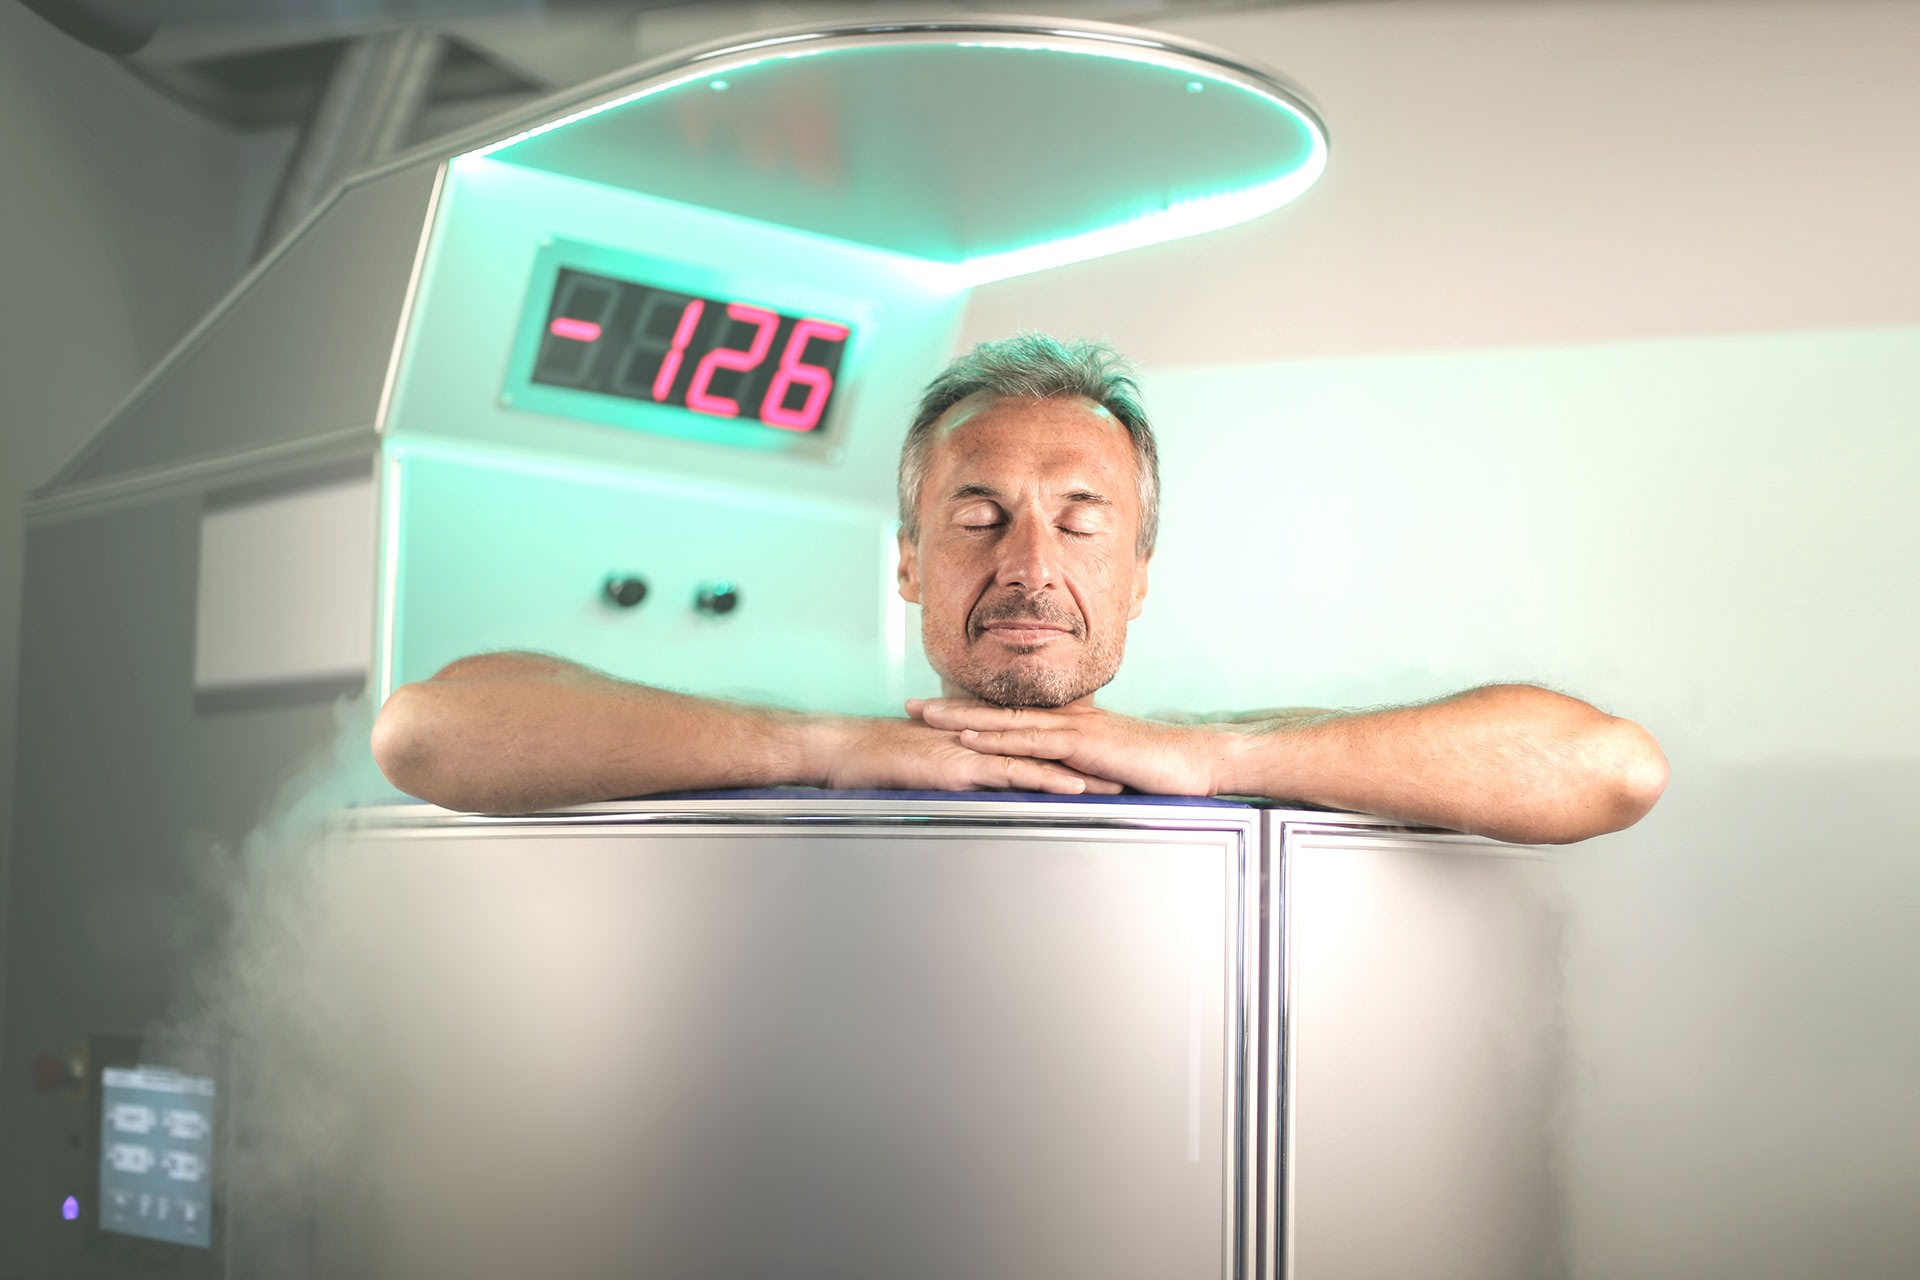 A relaxed man enjoying cryotherapy for pain relief